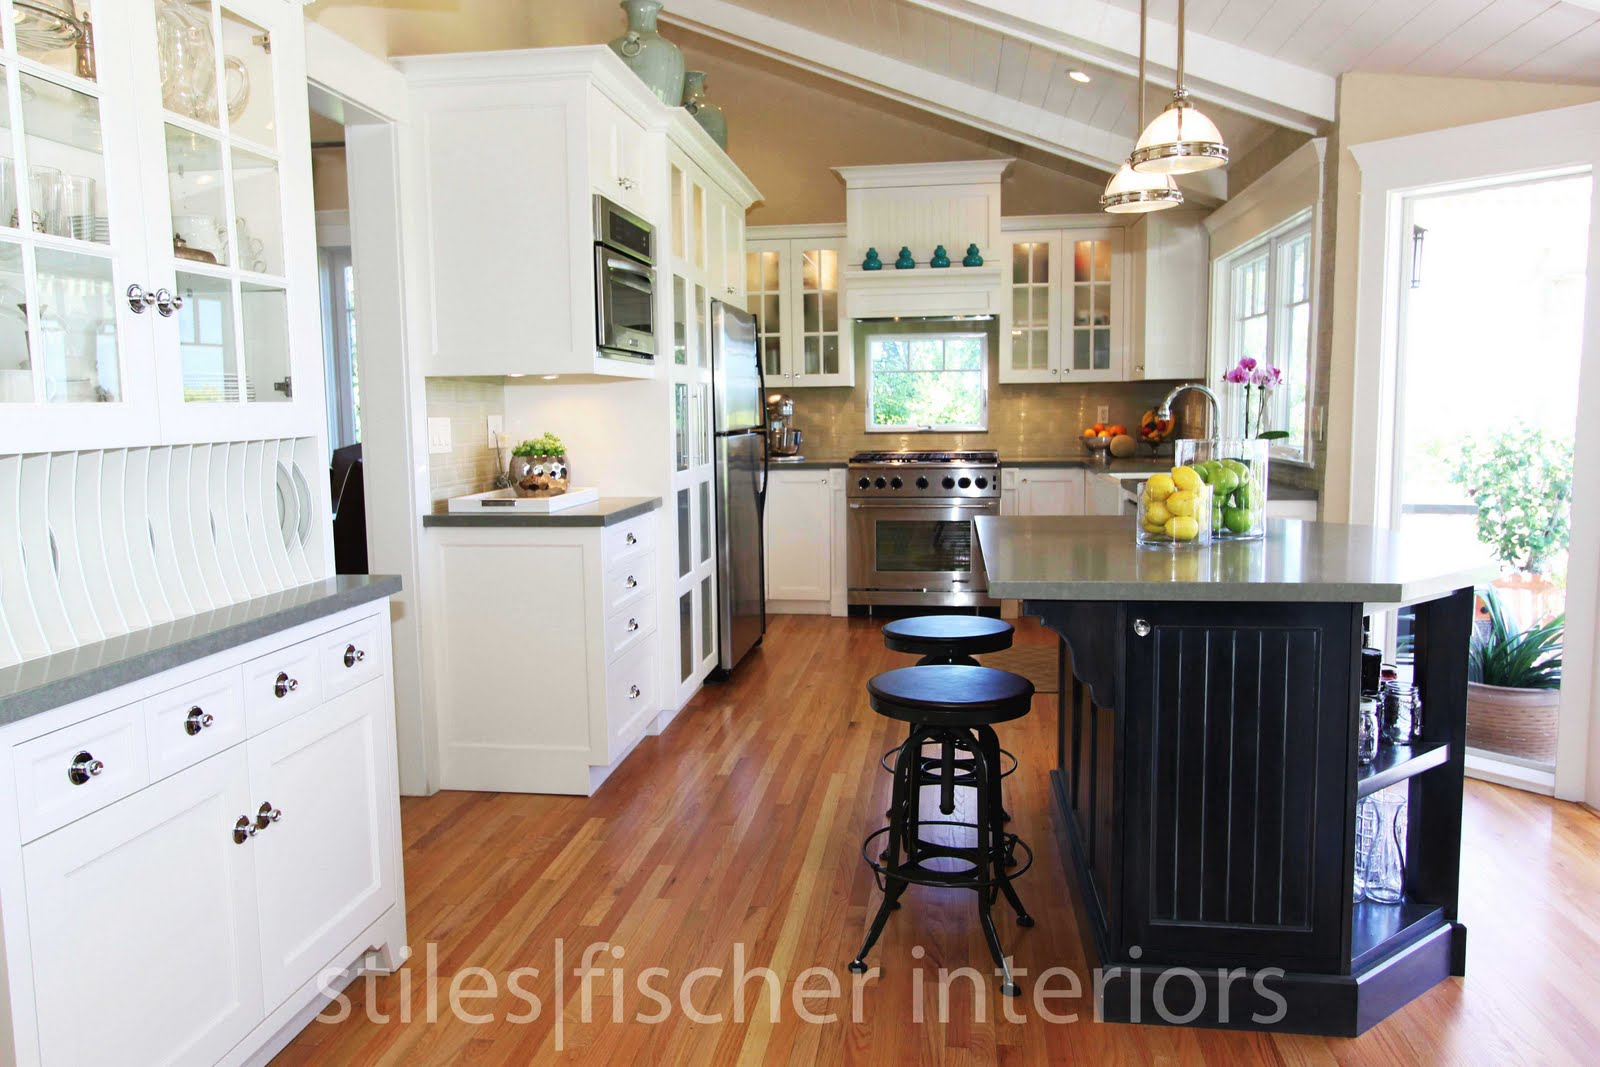 cabinet doors match the dining room paneling style clear glass cabinet